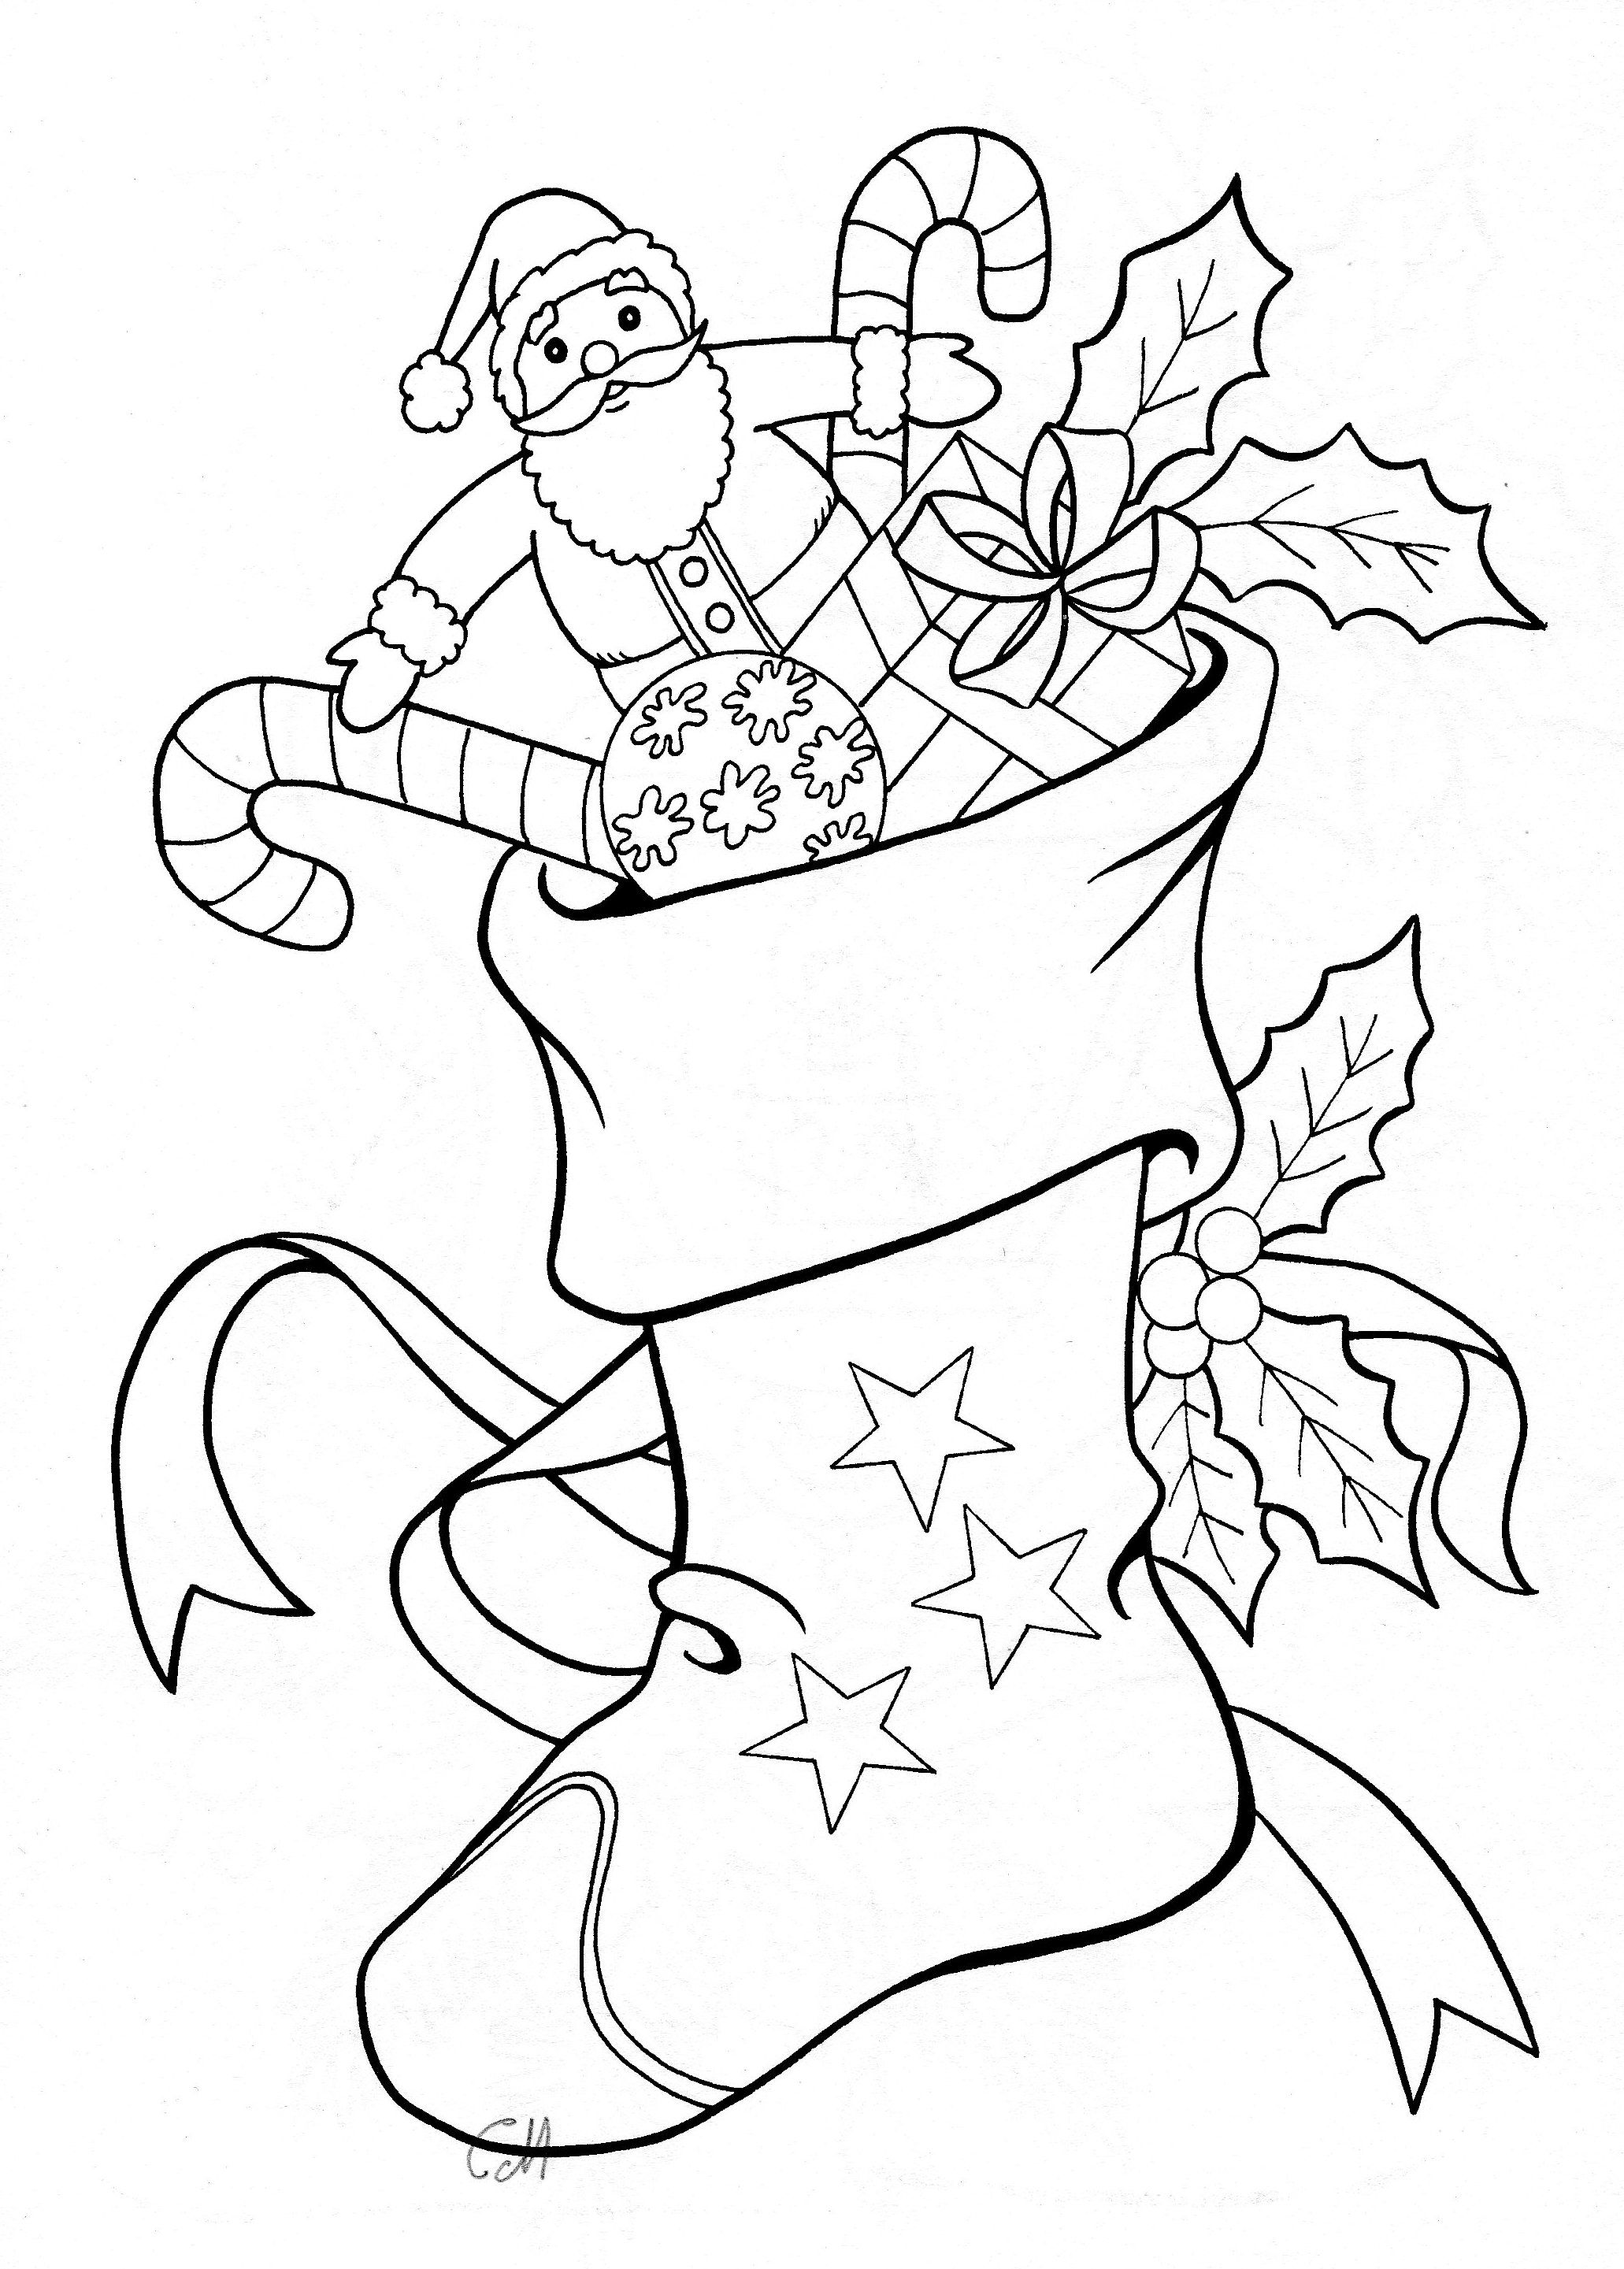 Christmas Embroidery Patterns Desenho De Natal Bordados A Mao